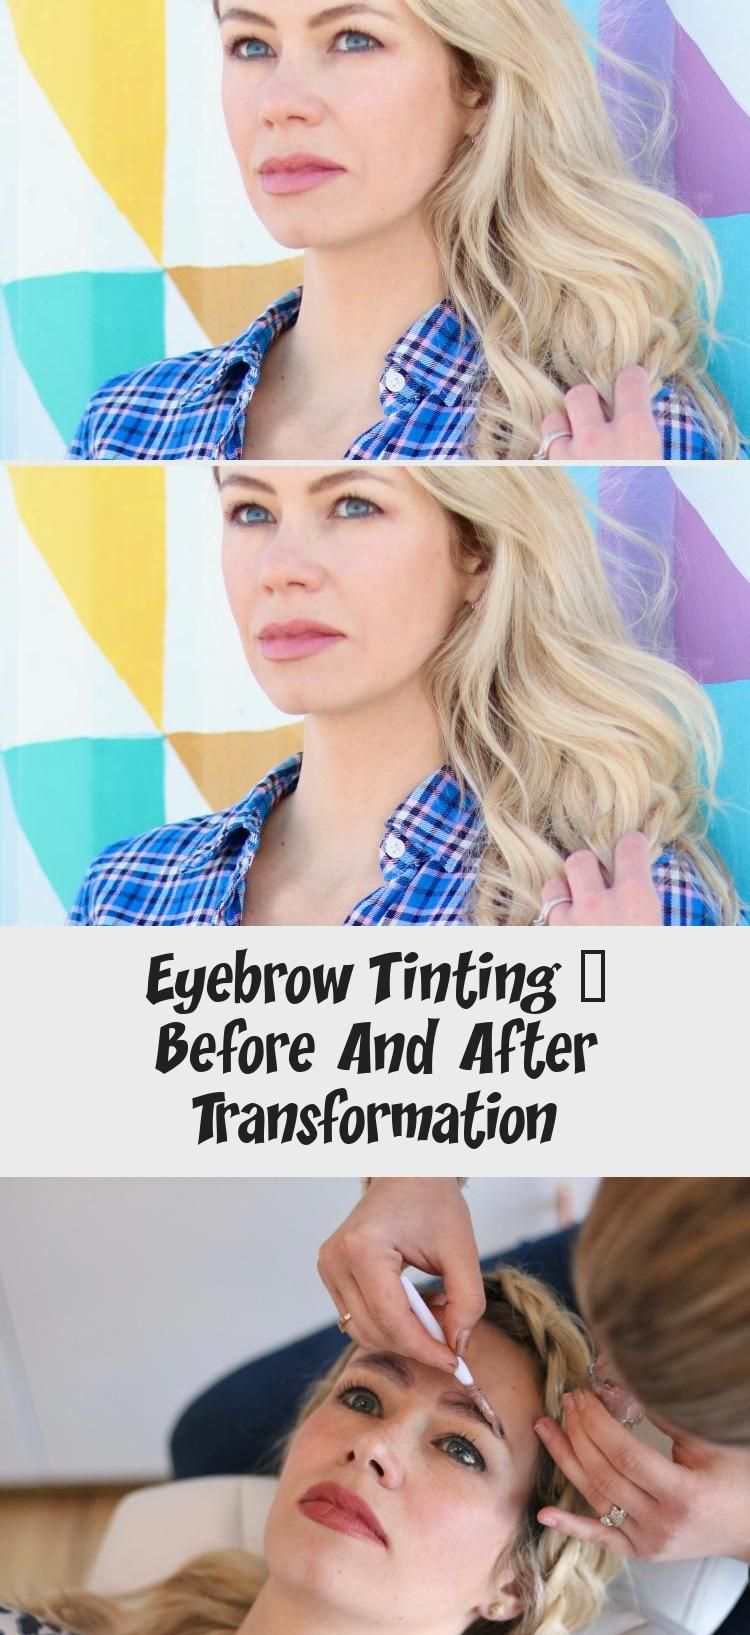 Eyebrow Tinting - Before And After Transformation in 2020 ...